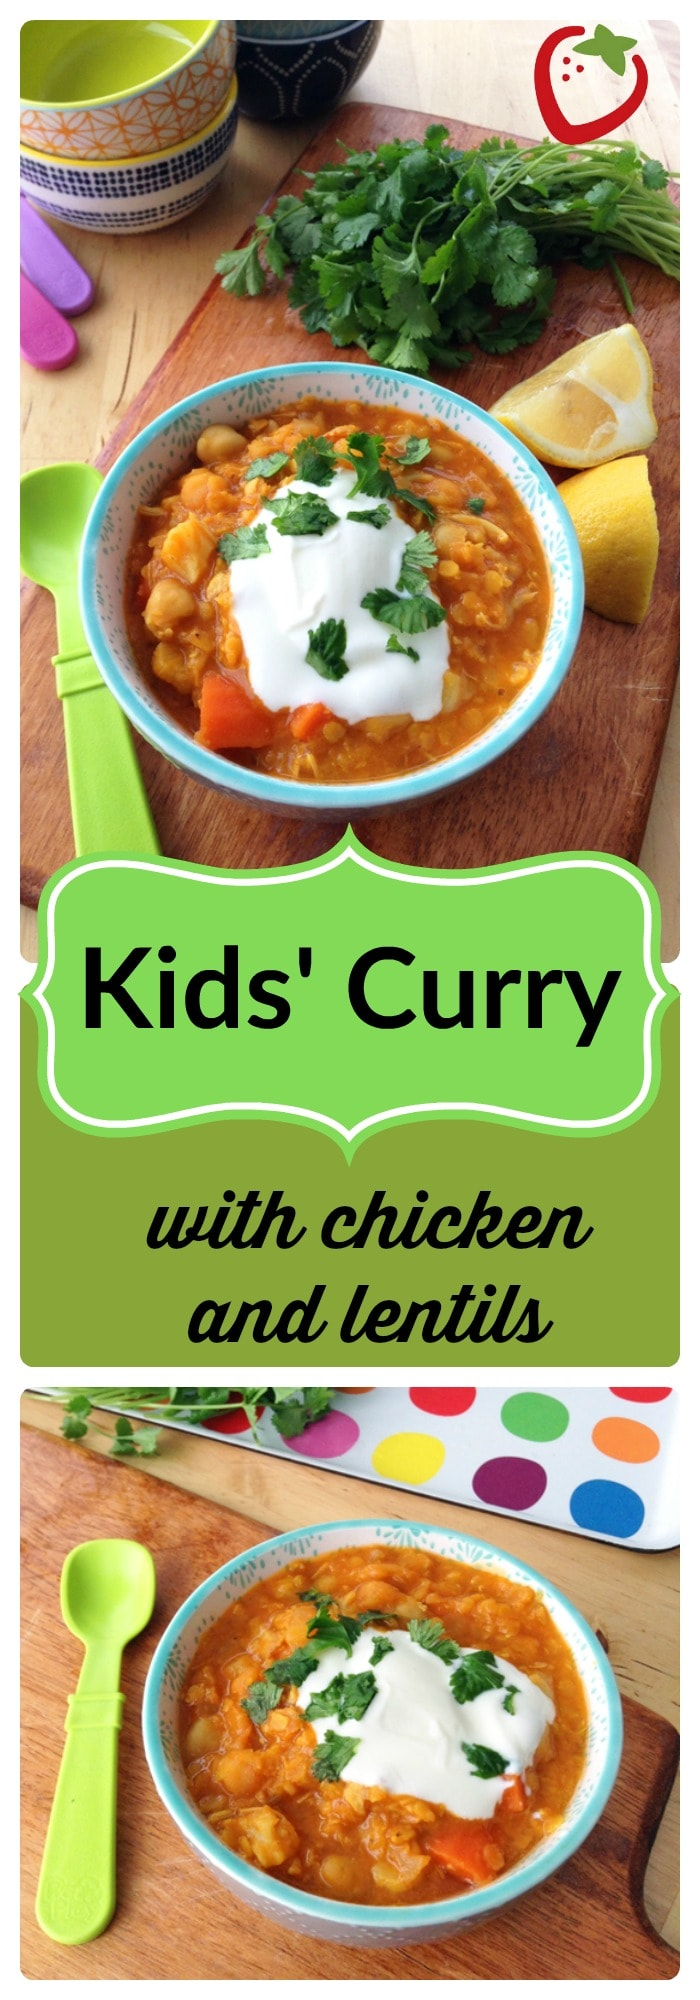 "FOOD - Kids' Curry with Chicken and Lentils. Redefine ""kid-friendly"" with this mild, warming, healthy curry packed with protein and vegetables. http://www.superhealthykids.com/kids-curry-with-chicken-and-red-lentils/"